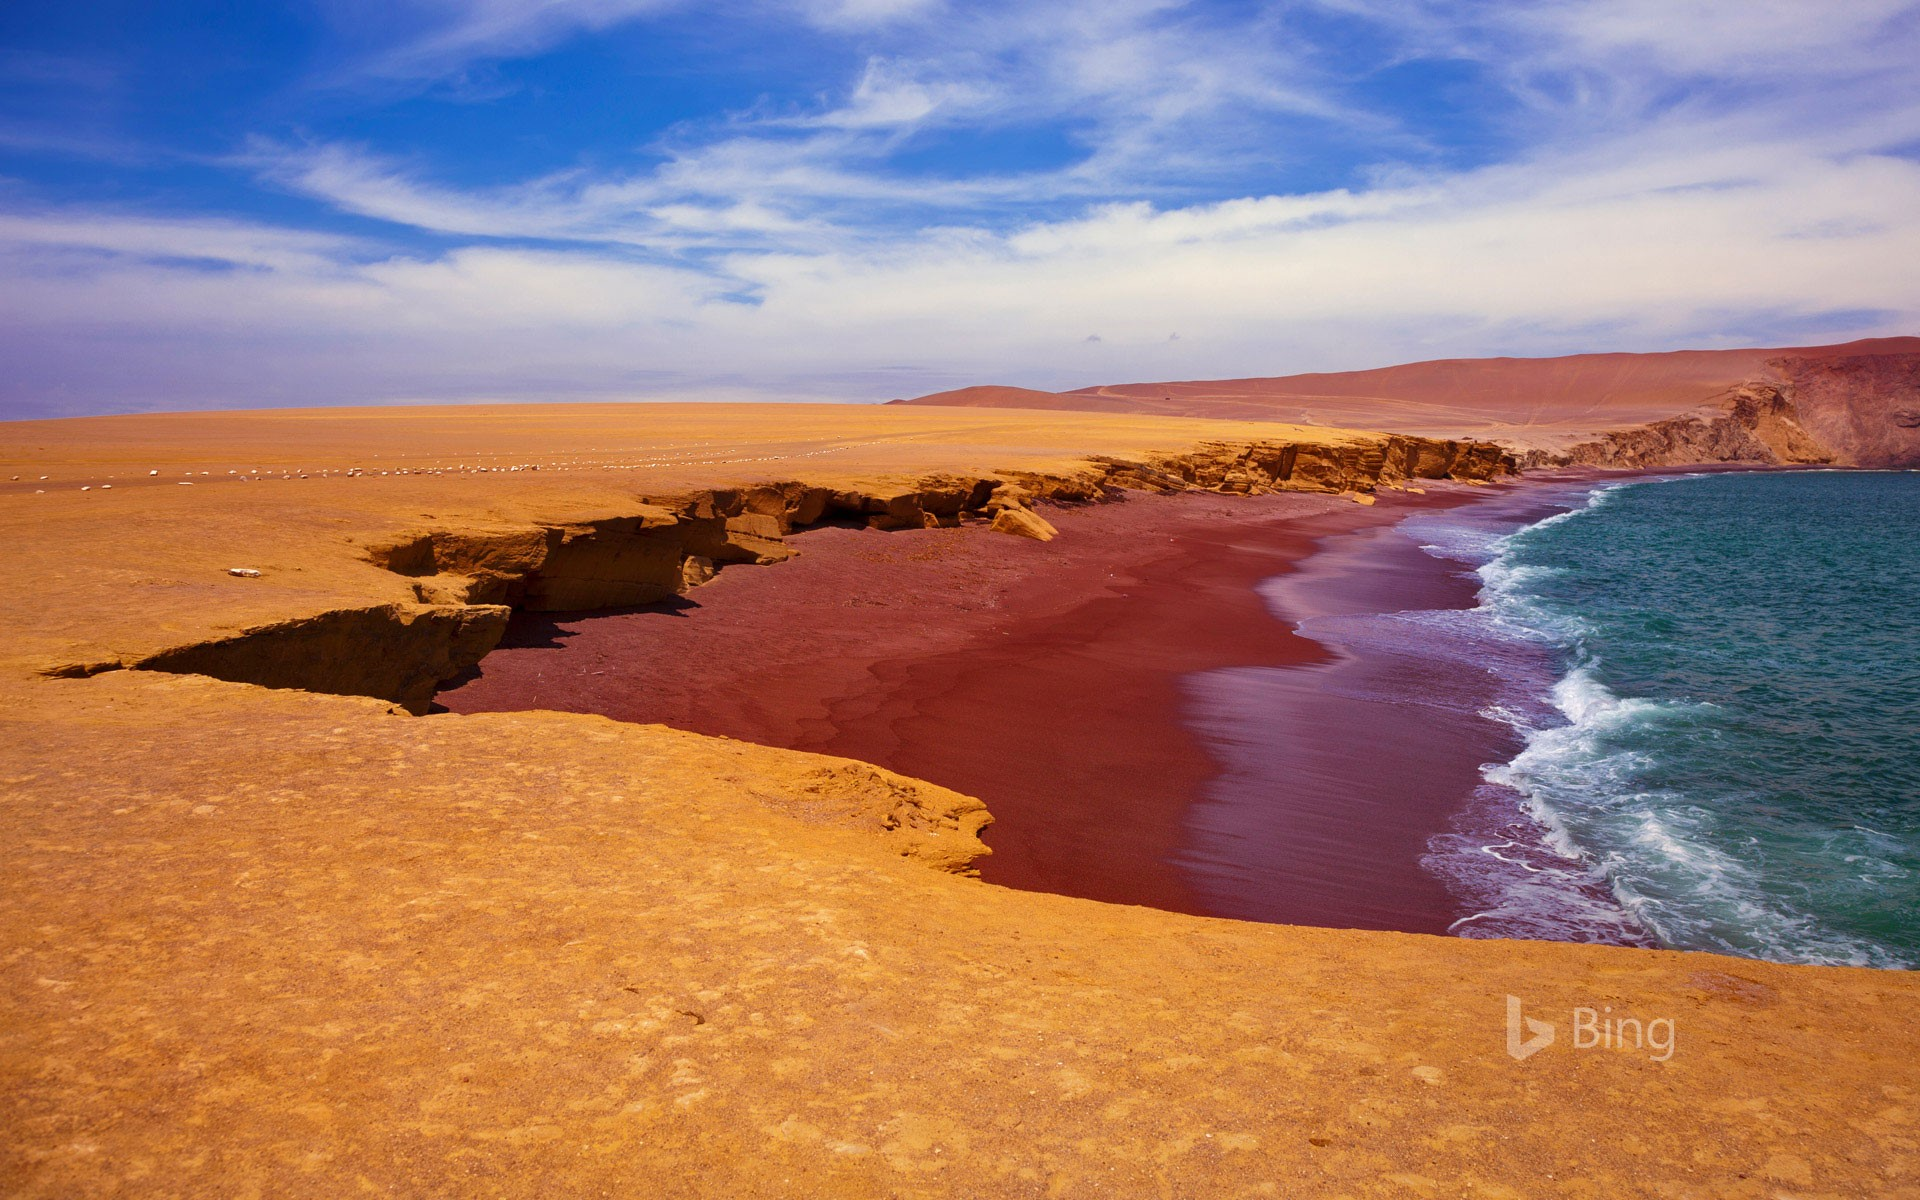 Playa Roja in Paracas National Reserve, Peru